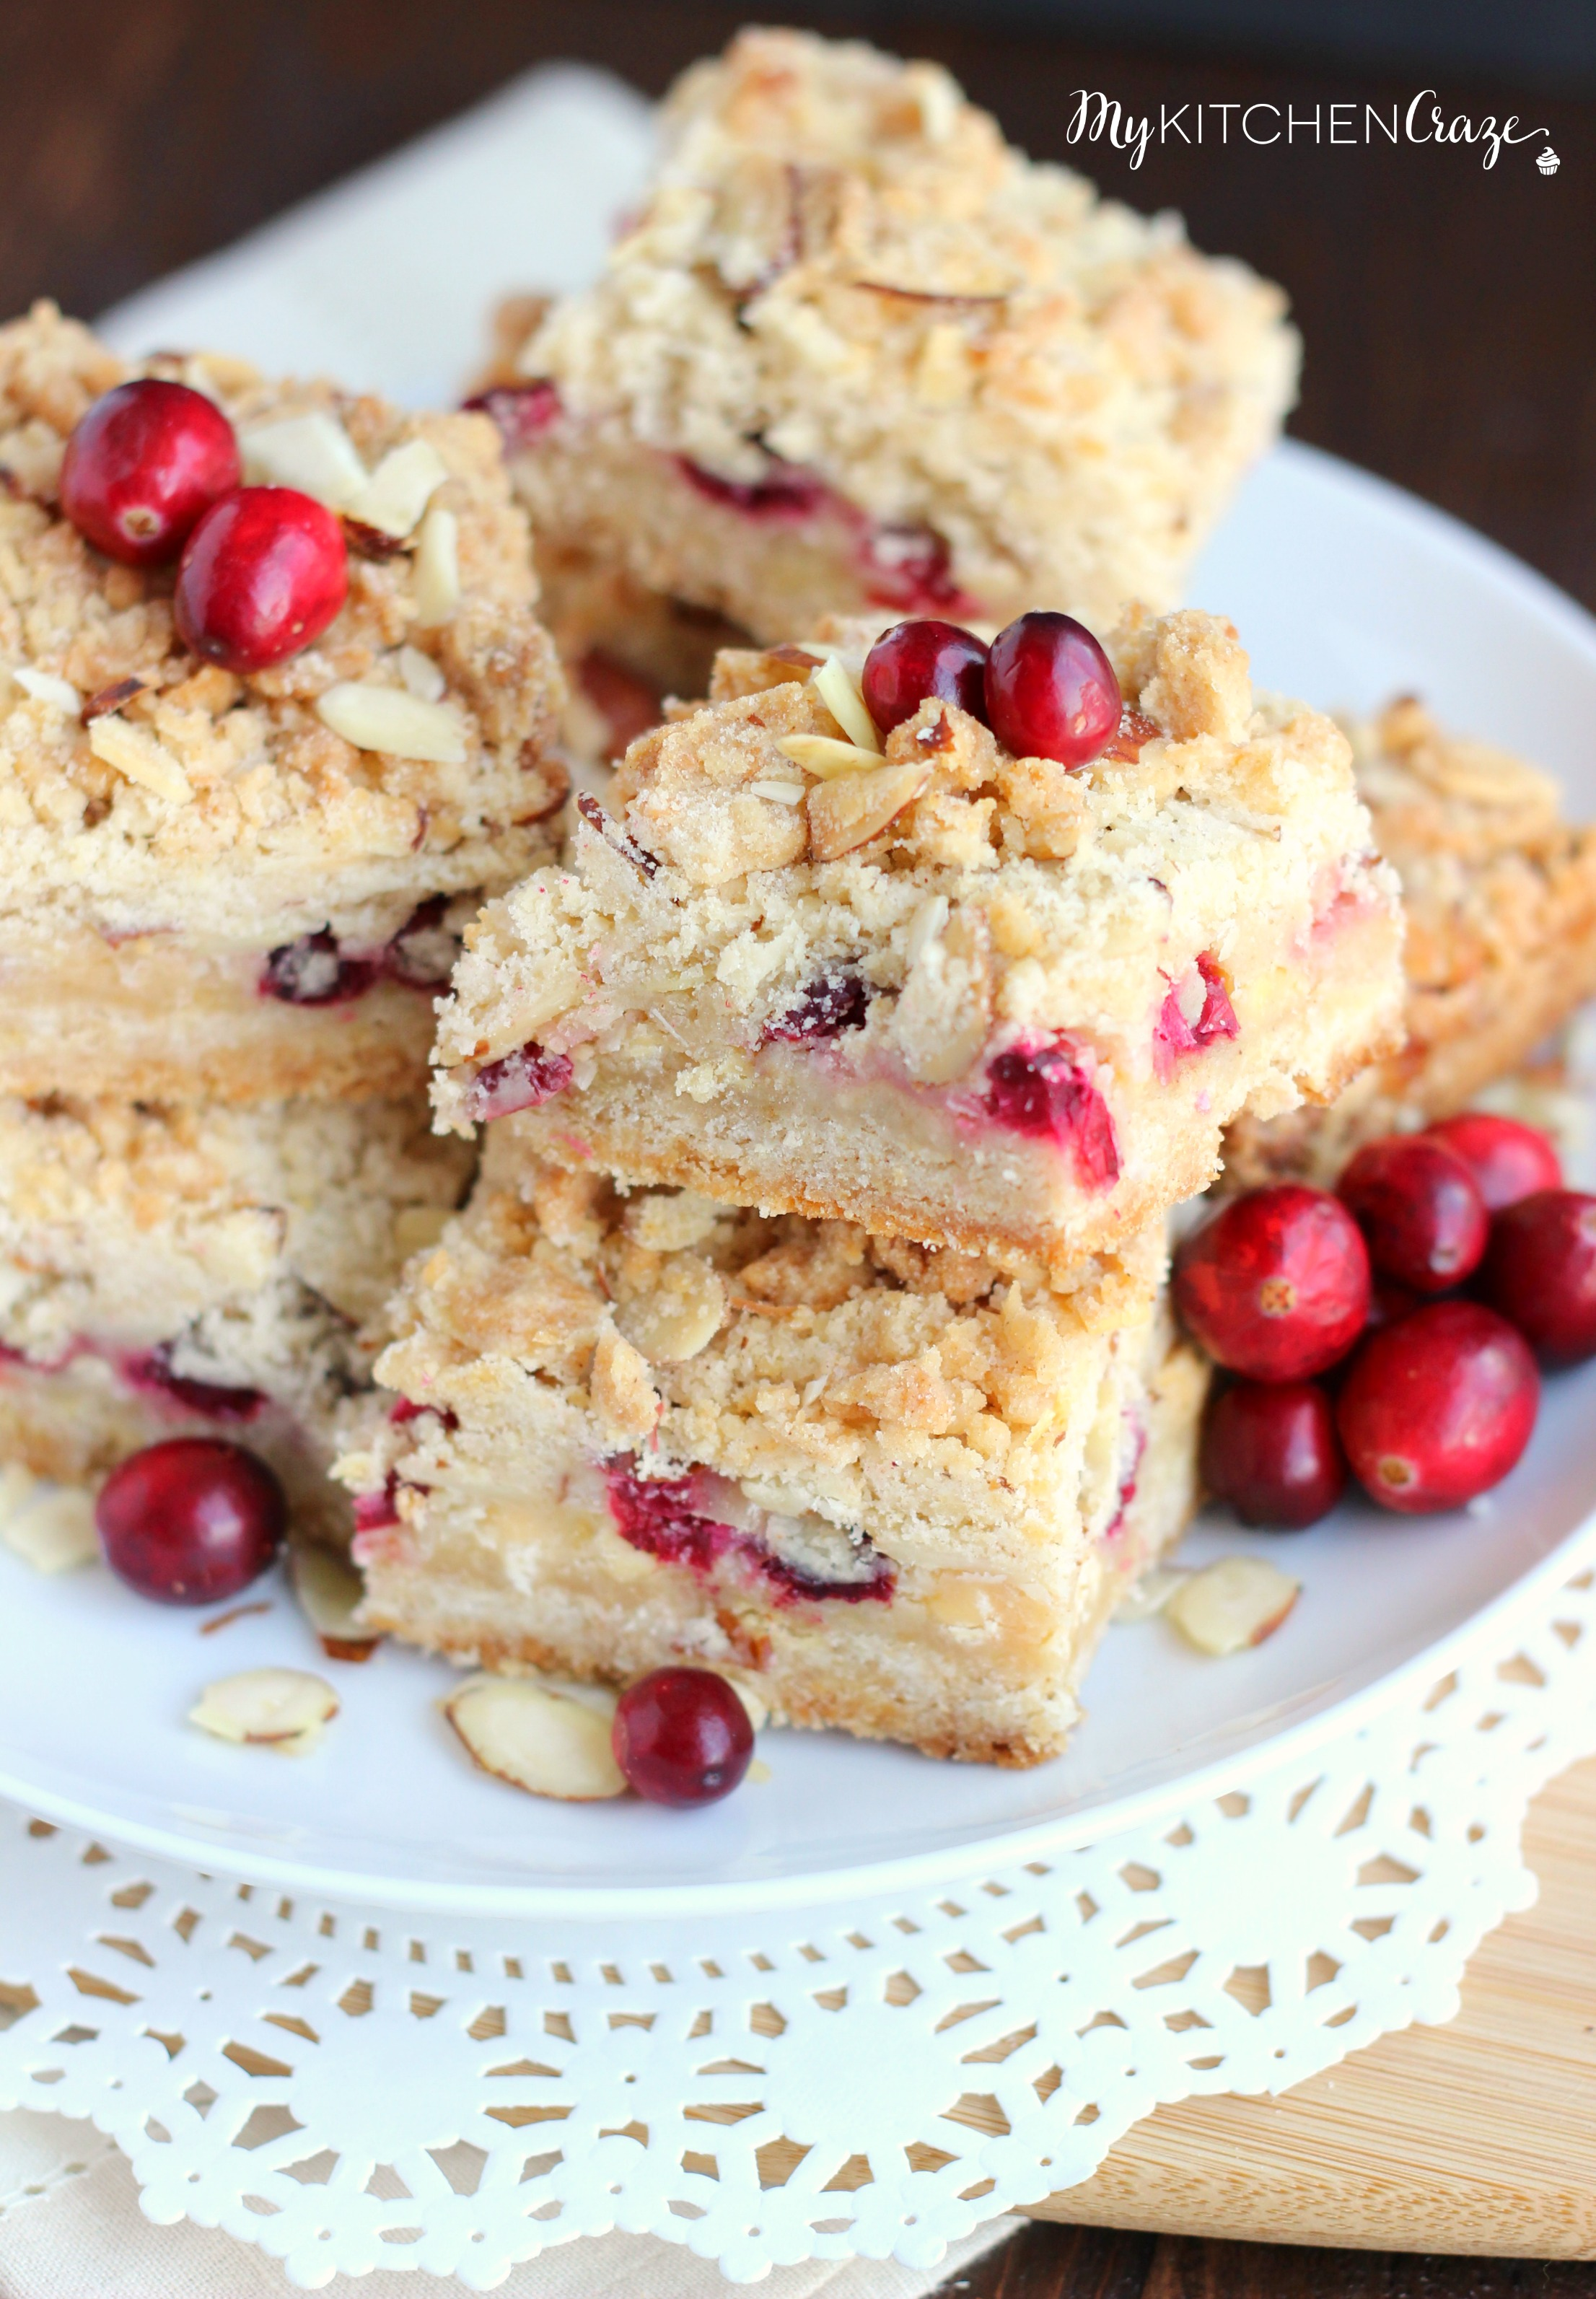 Cranberry Magic Bars ~ mykitchencraze.com ~ A twist on the classic magic bars. These have layers of white chocolate chips, flakey coconut, condensed milk and fresh cranberries. These magic bars will be gone before you know it!